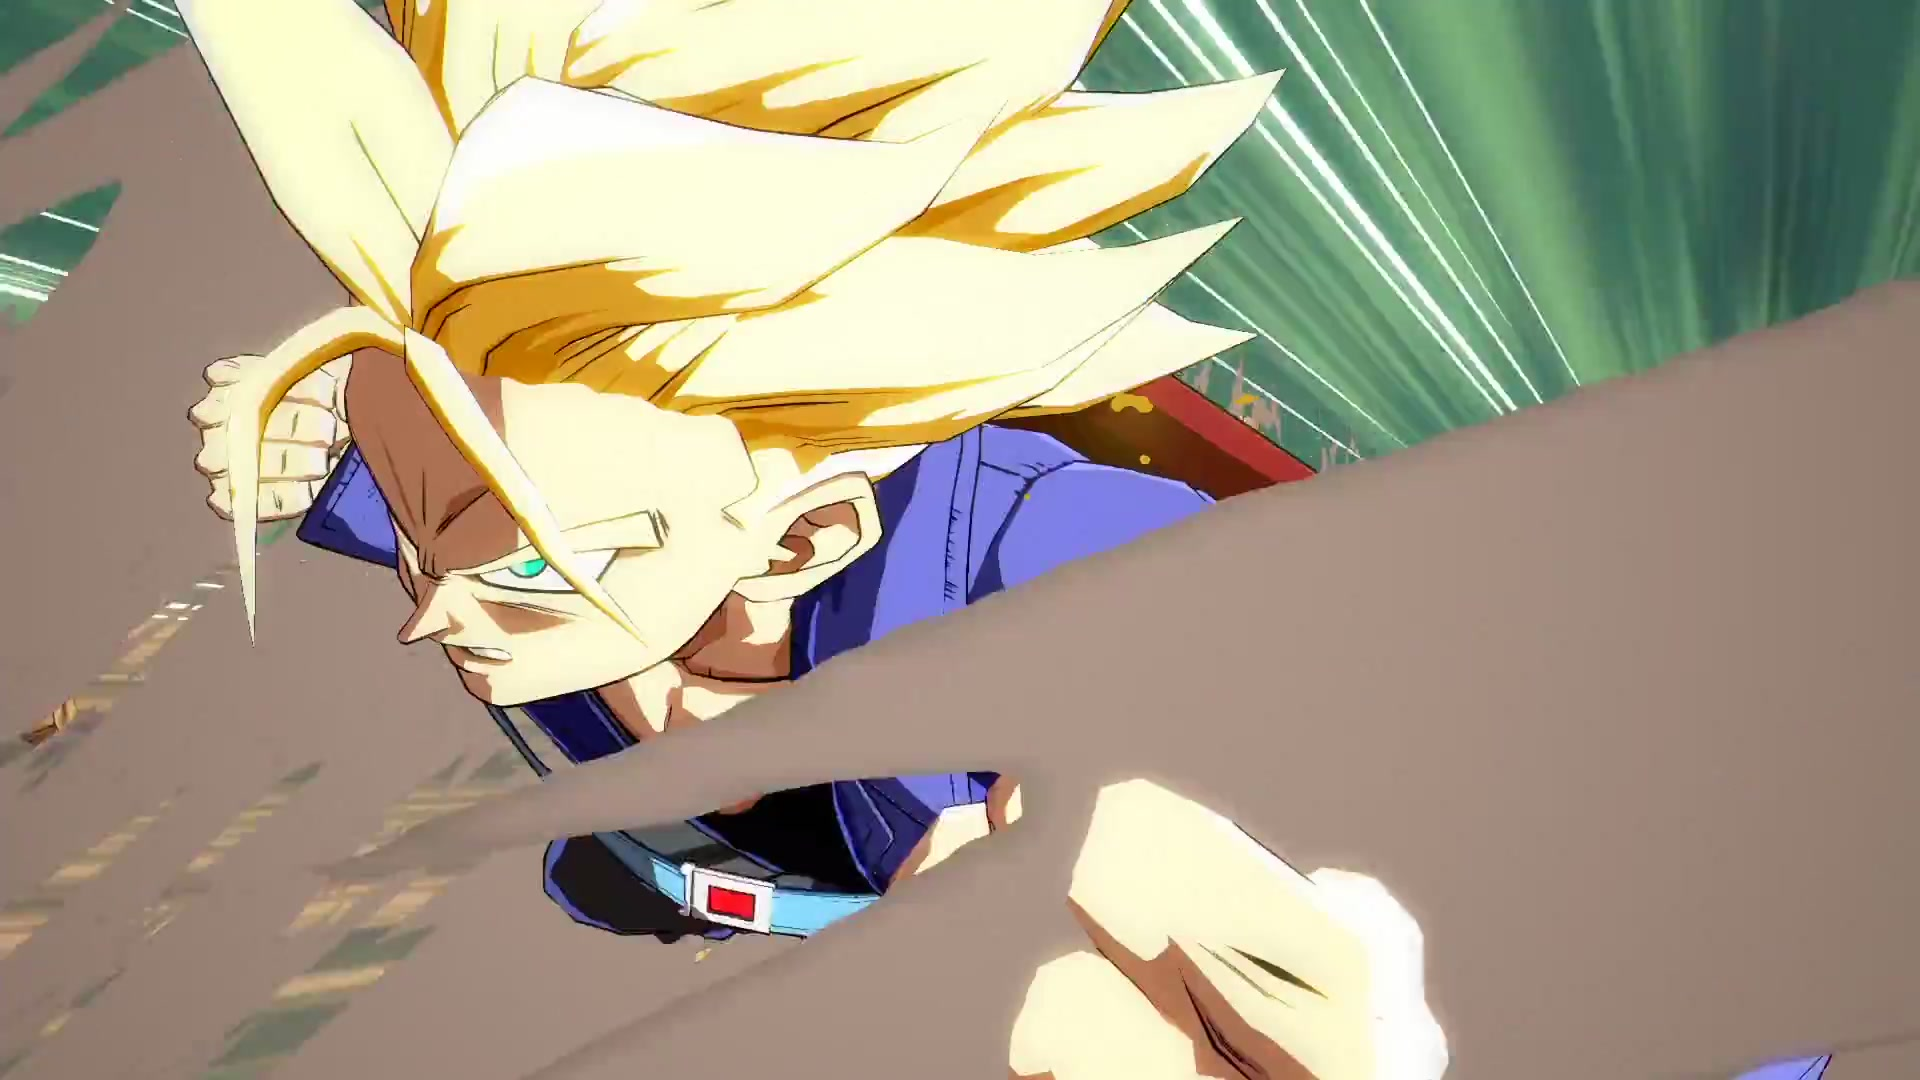 Trunks in Dragon Ball FighterZ 4 out of 12 image gallery